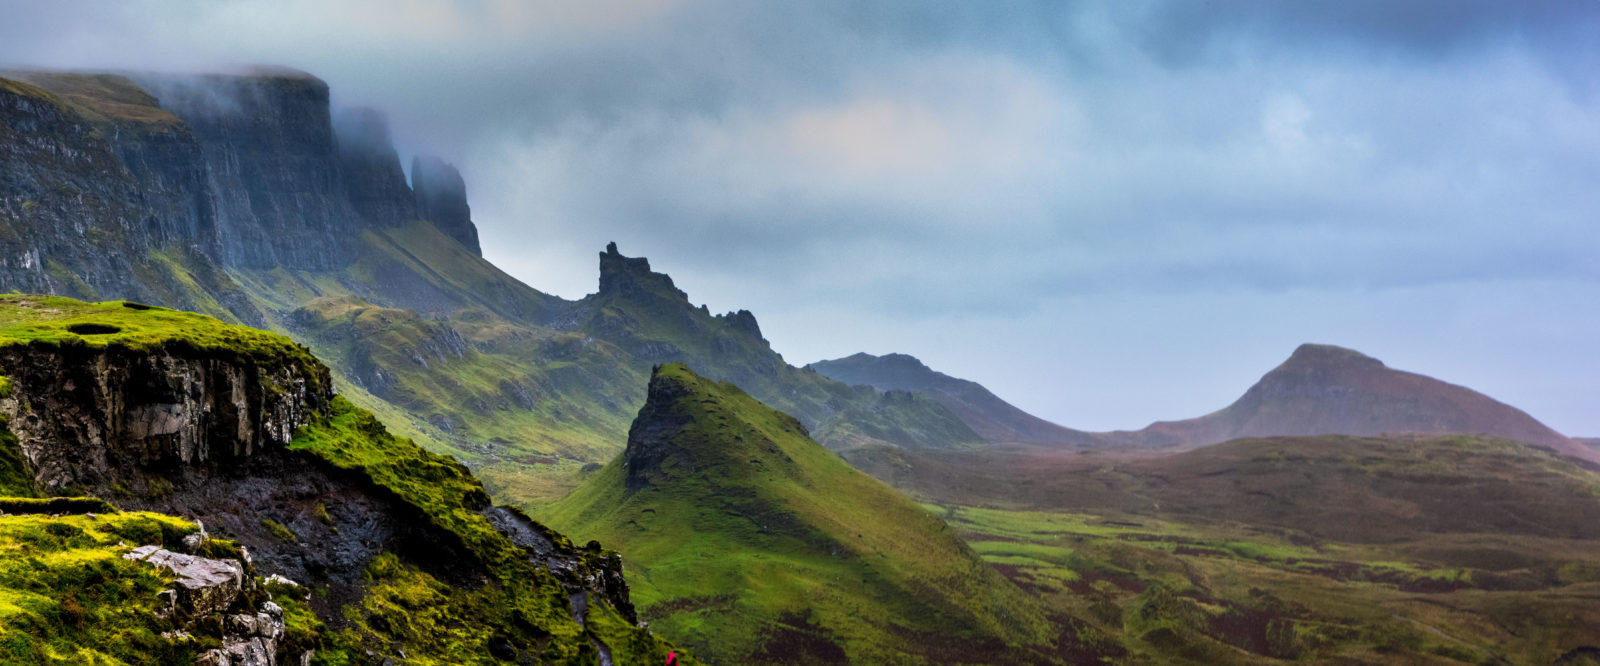 The Quiraing, Trotternish Ridge, Isle of Skye, Scotland